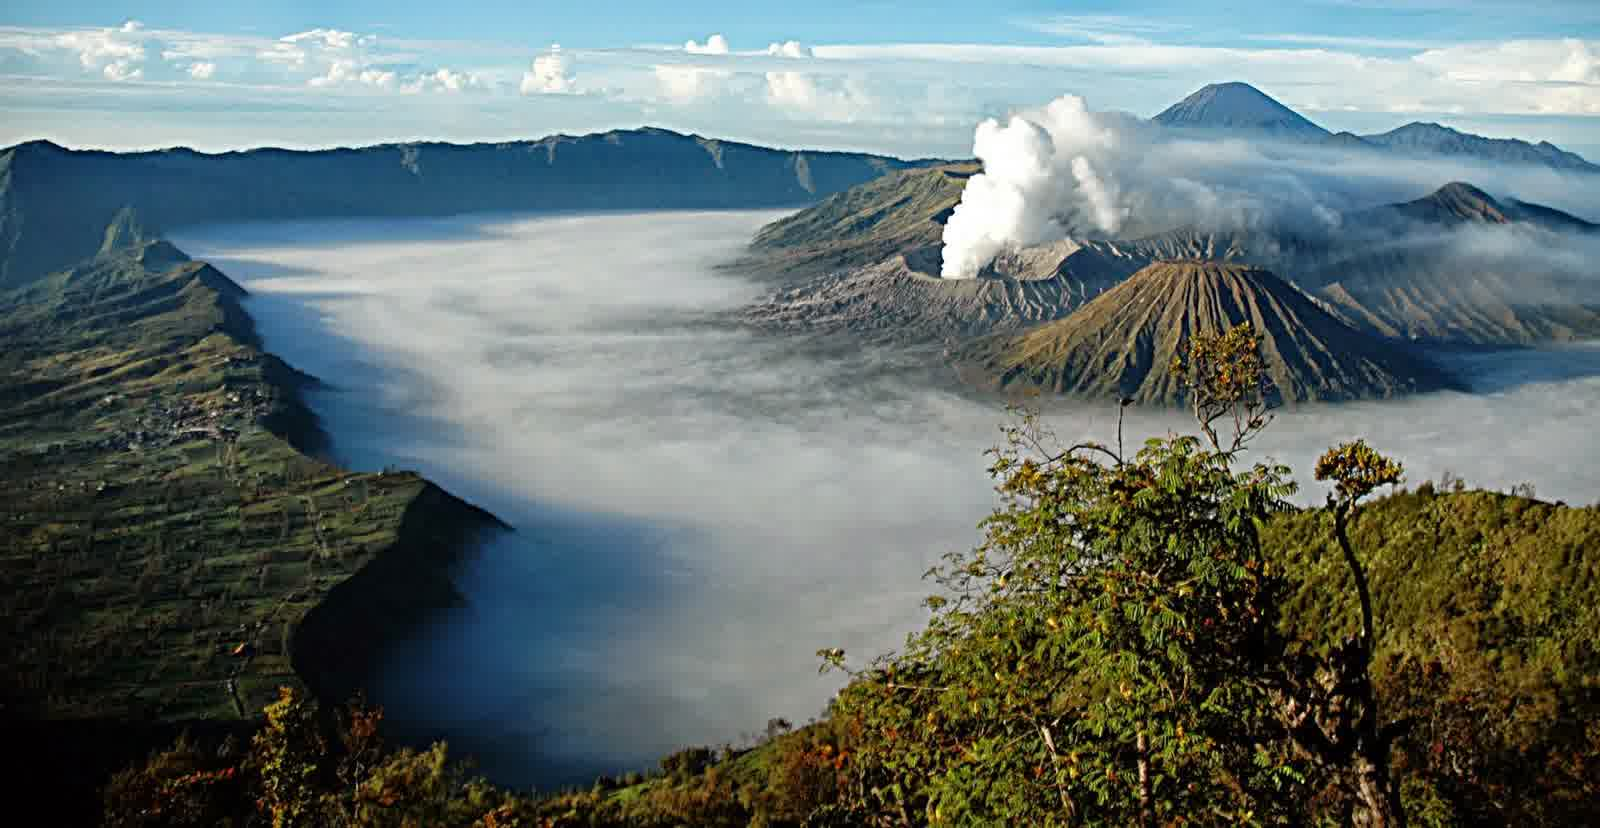 Mount Bromo Isyg 2017 Sunset Full Destination Committee Provide Additional Activities Optional A Tour To We Choose As The Of This Because Is Most